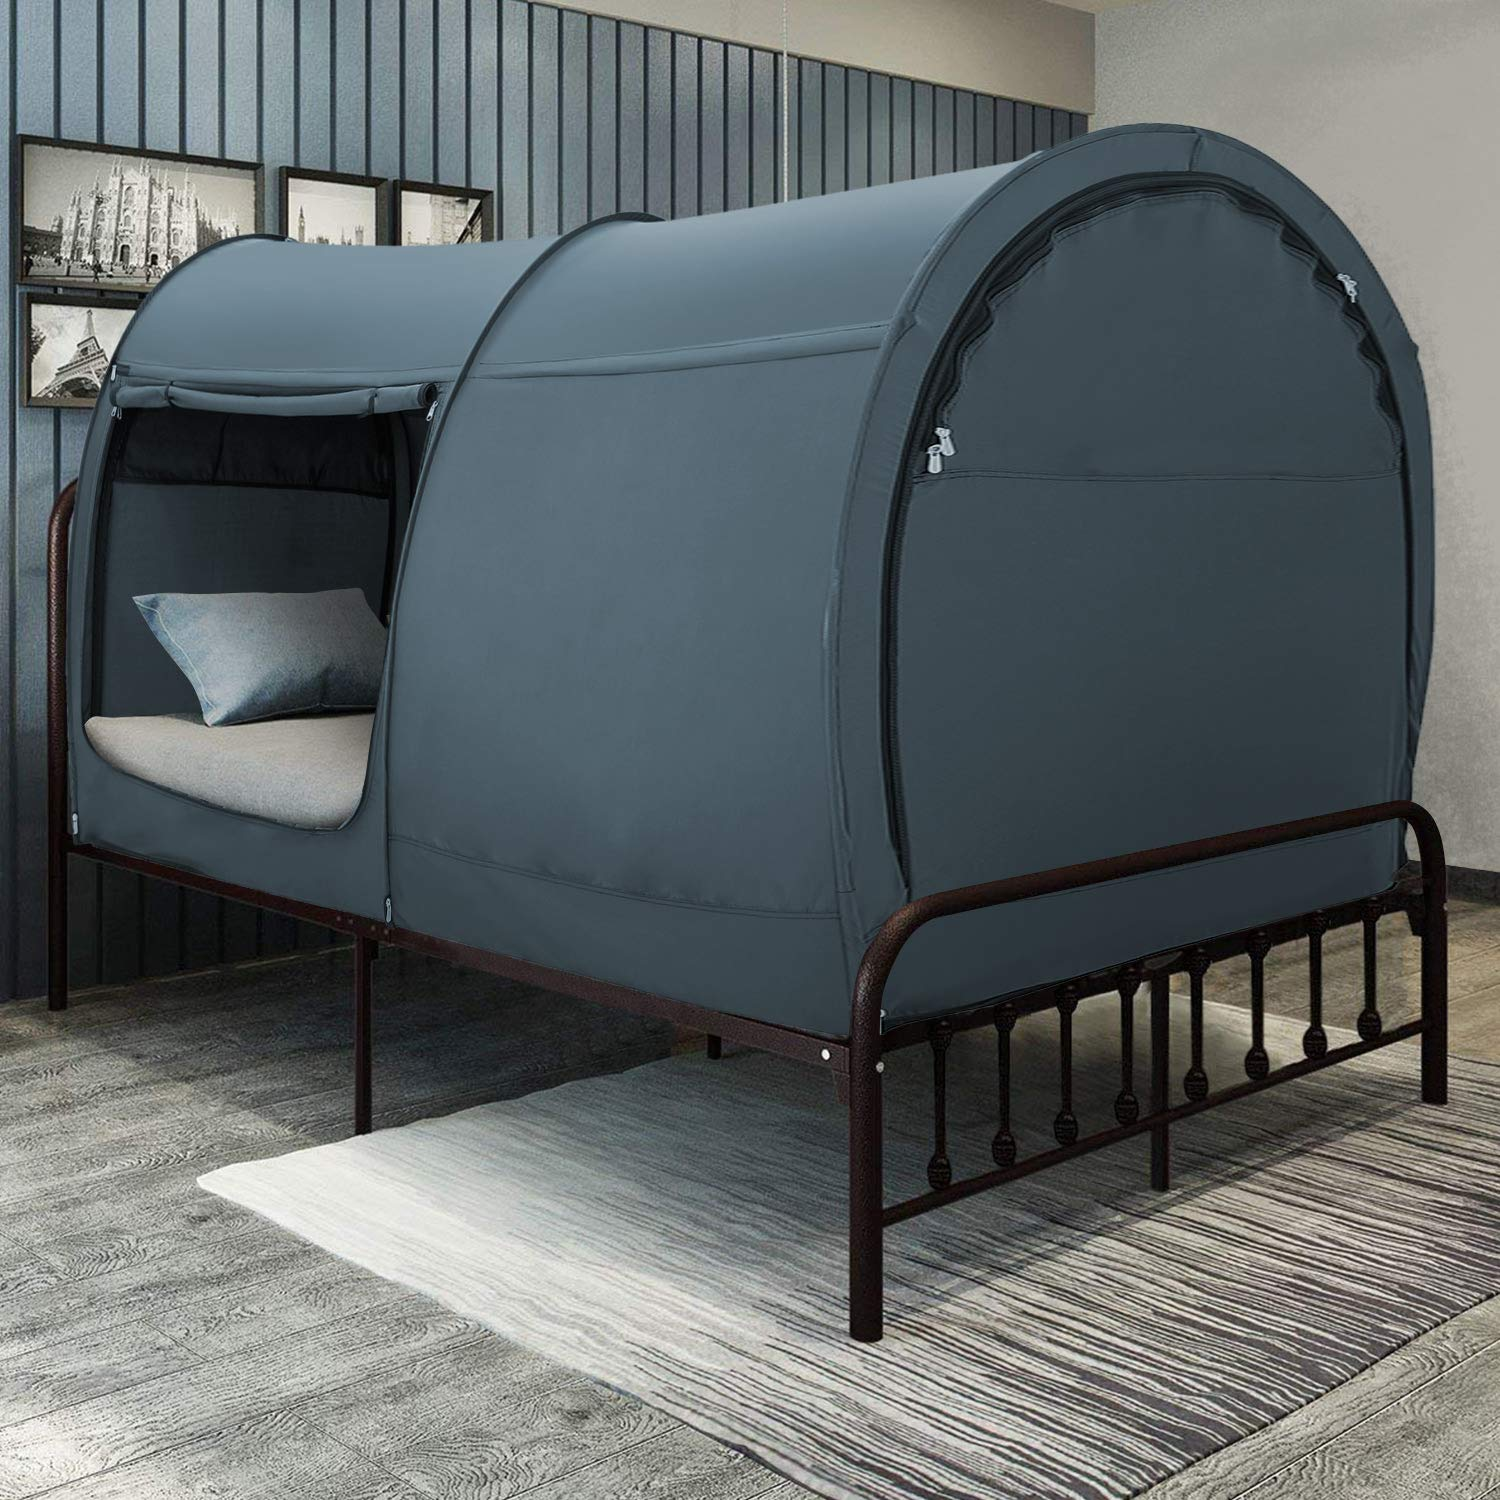 Bed Tent Dream Tents Bed Canopy Shelter Cabin Indoor Privacy Pop Up Warm Breathable Twin Size for Kids and Adult Patent Pending Gray(Mattress Not Included)